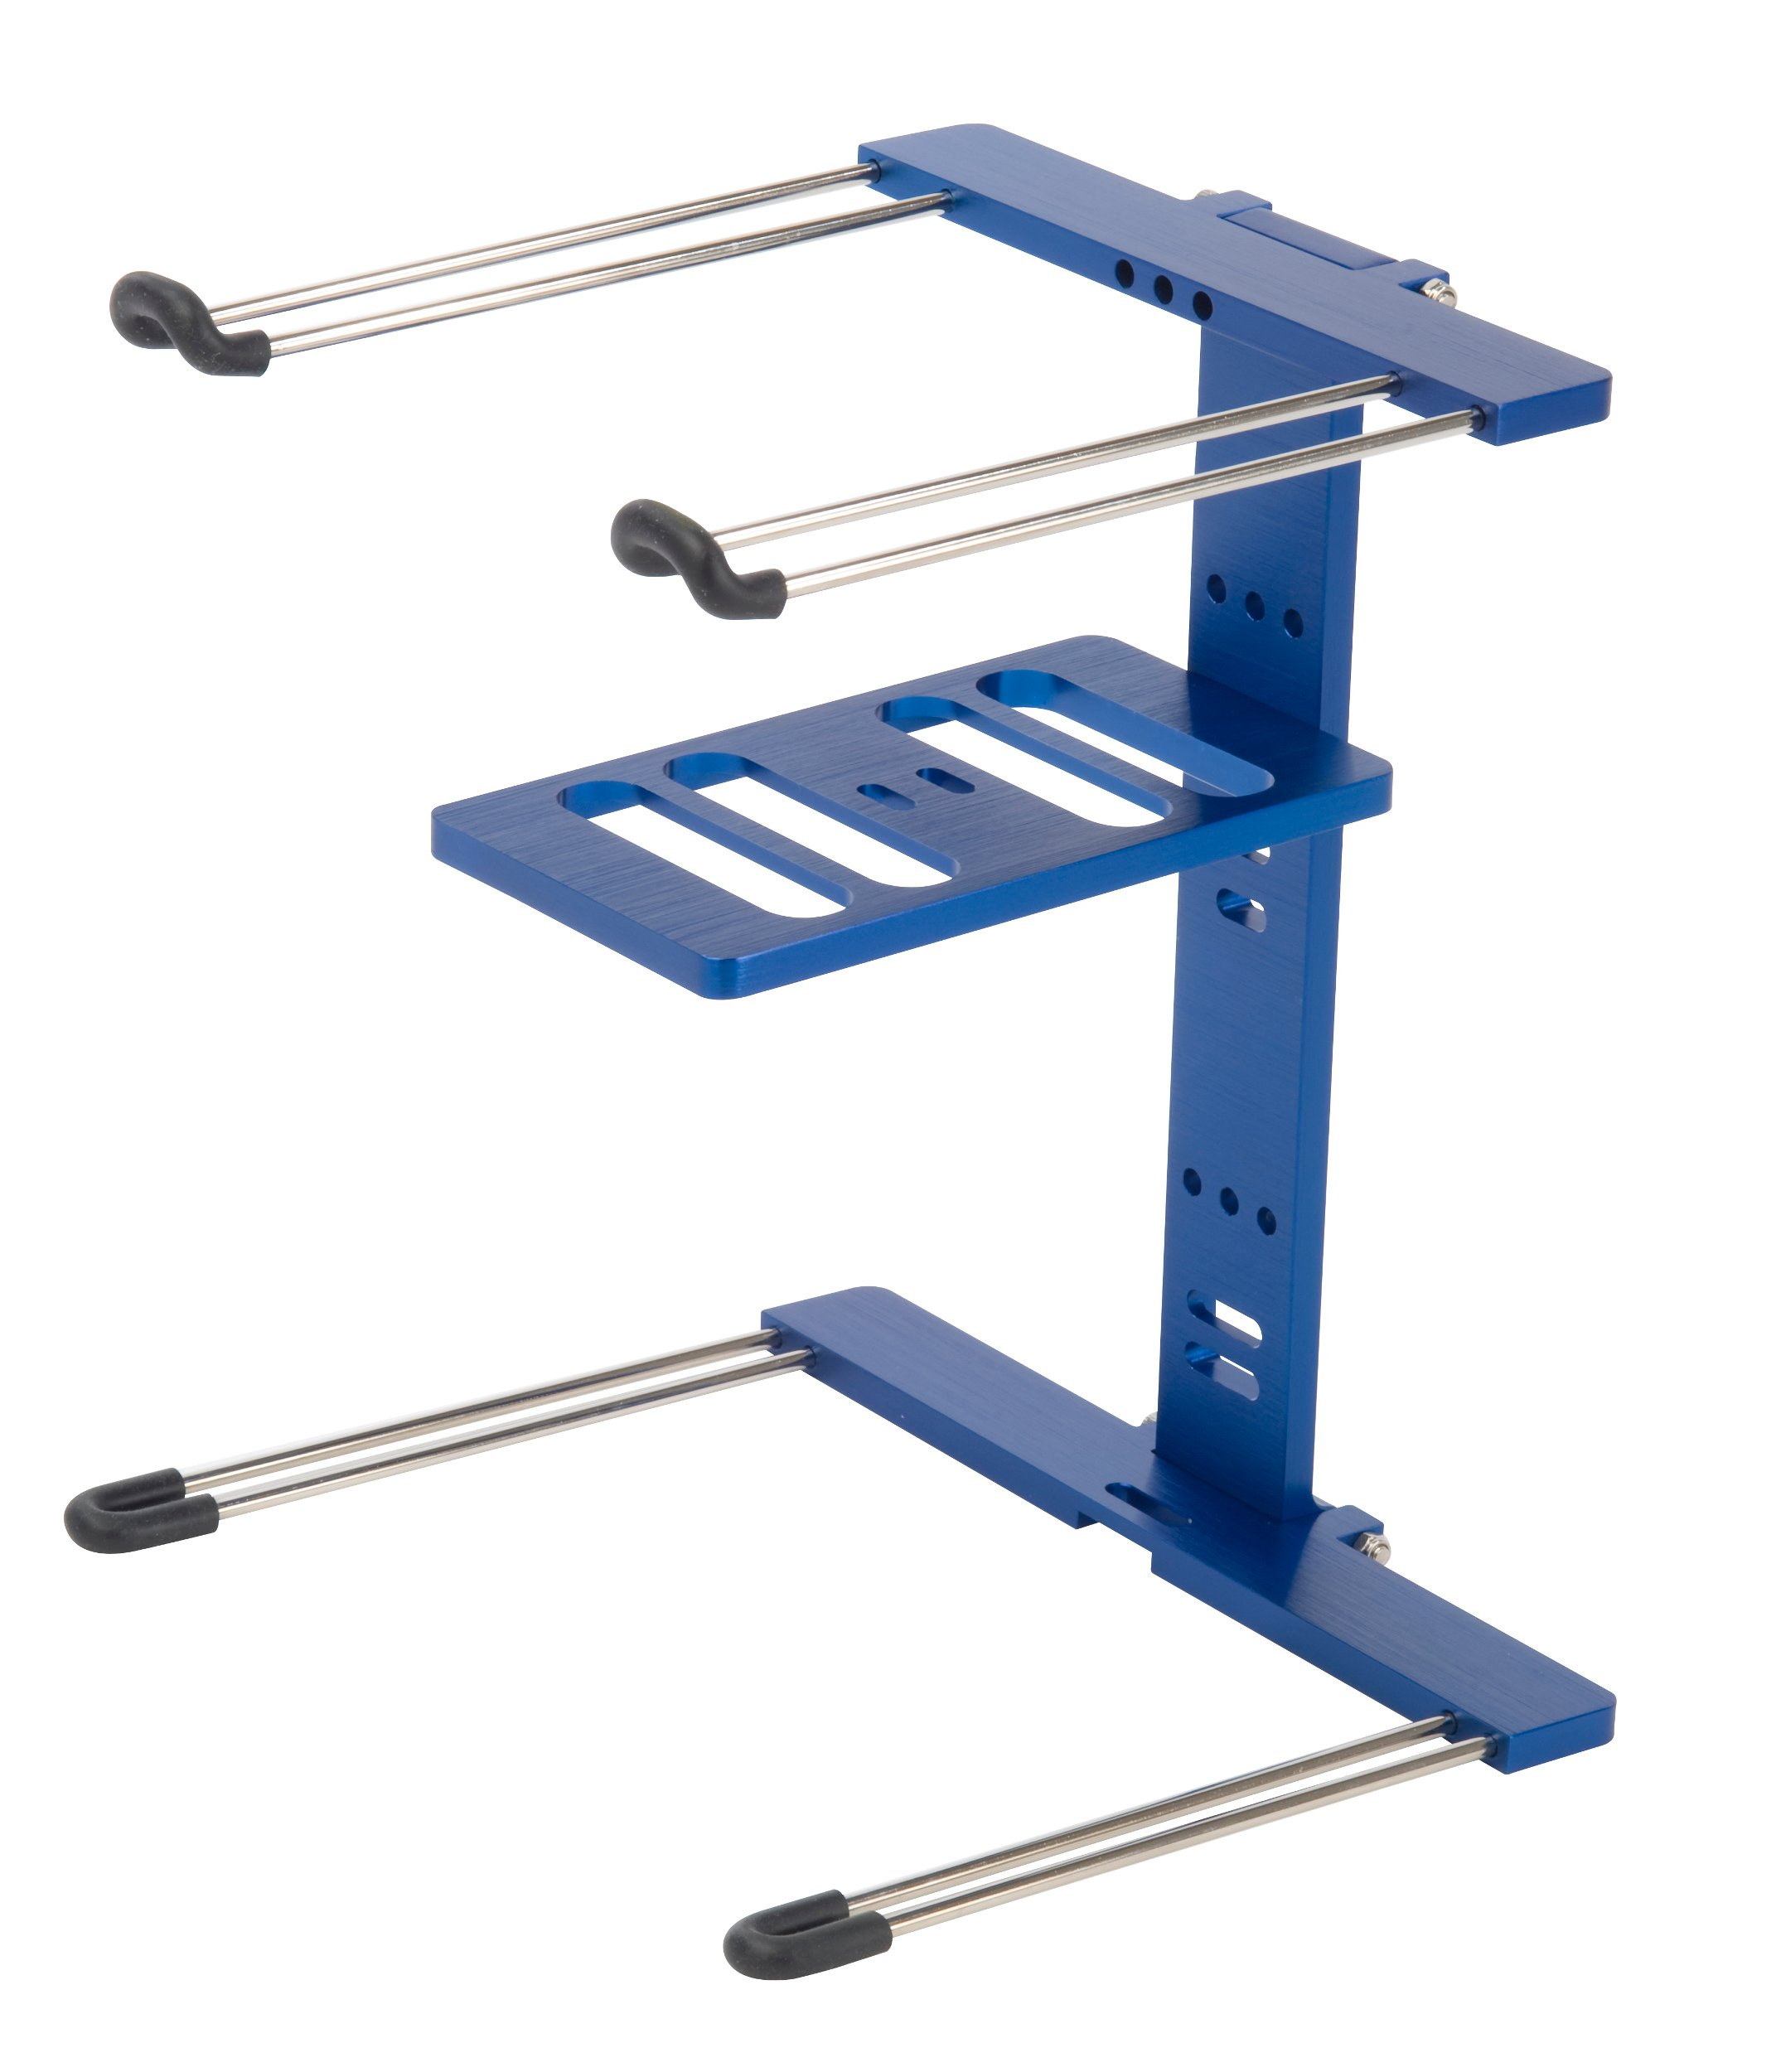 Stanton Uberstand Laptop Stand with Adjustable Shelf UBERSTAND-STANTON